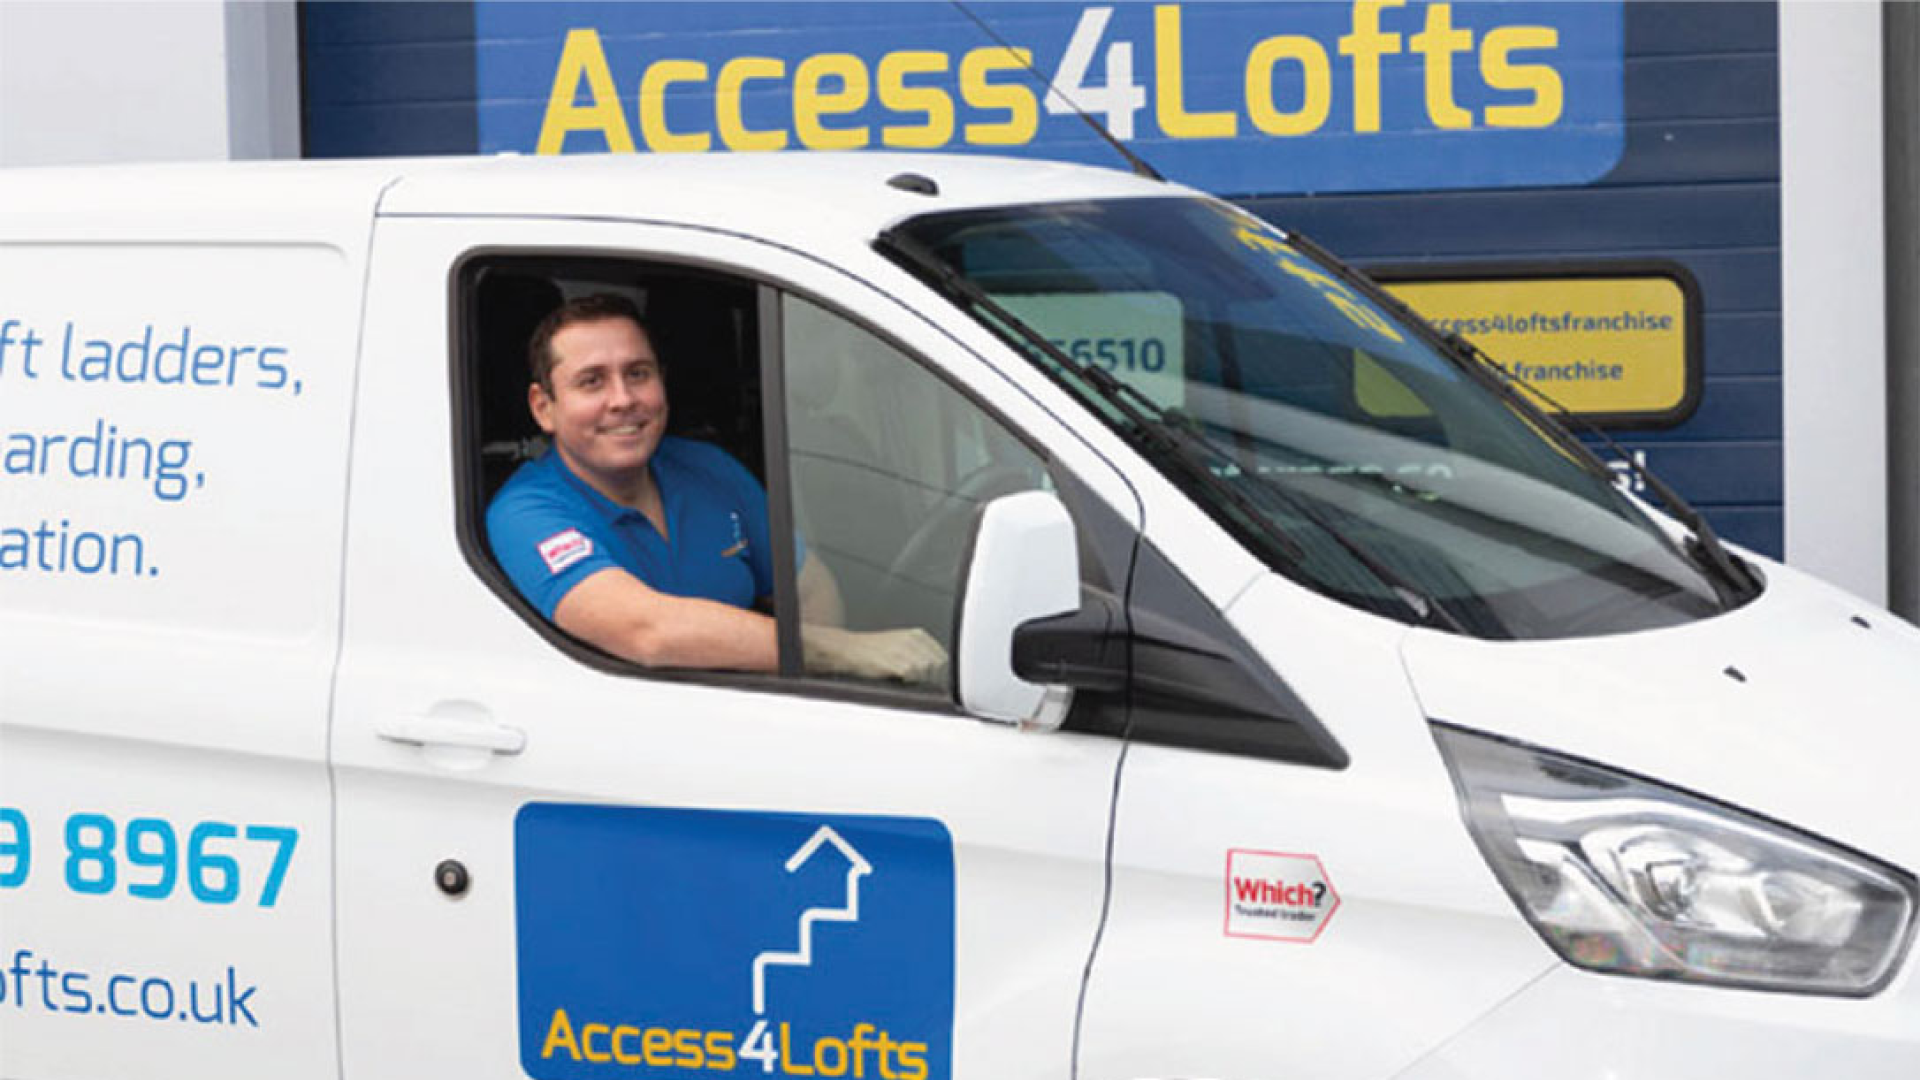 Hear from John Ioneasa about his journey into franchising with Access4Lofts